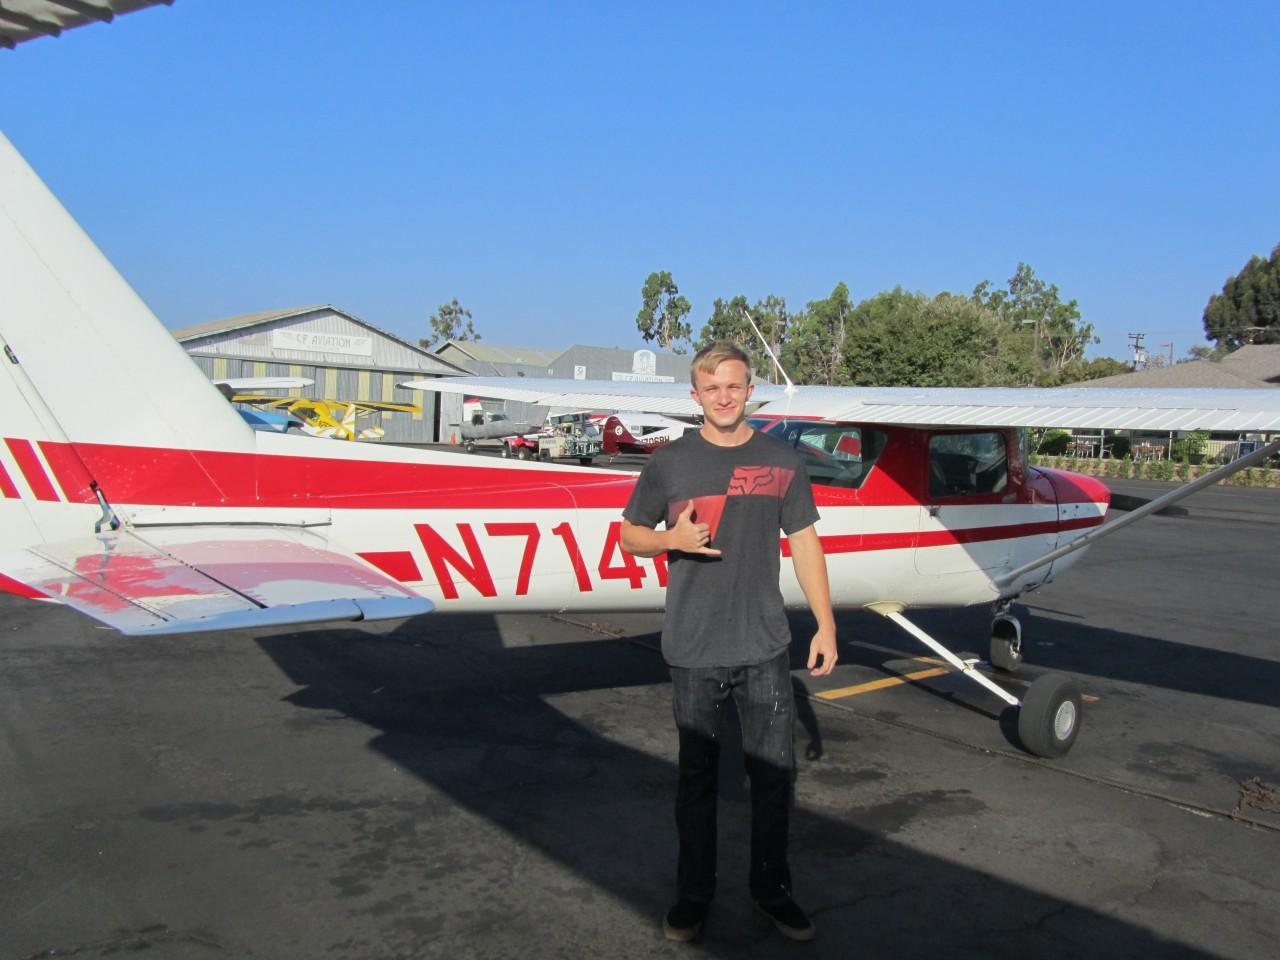 First Solo - Noah White